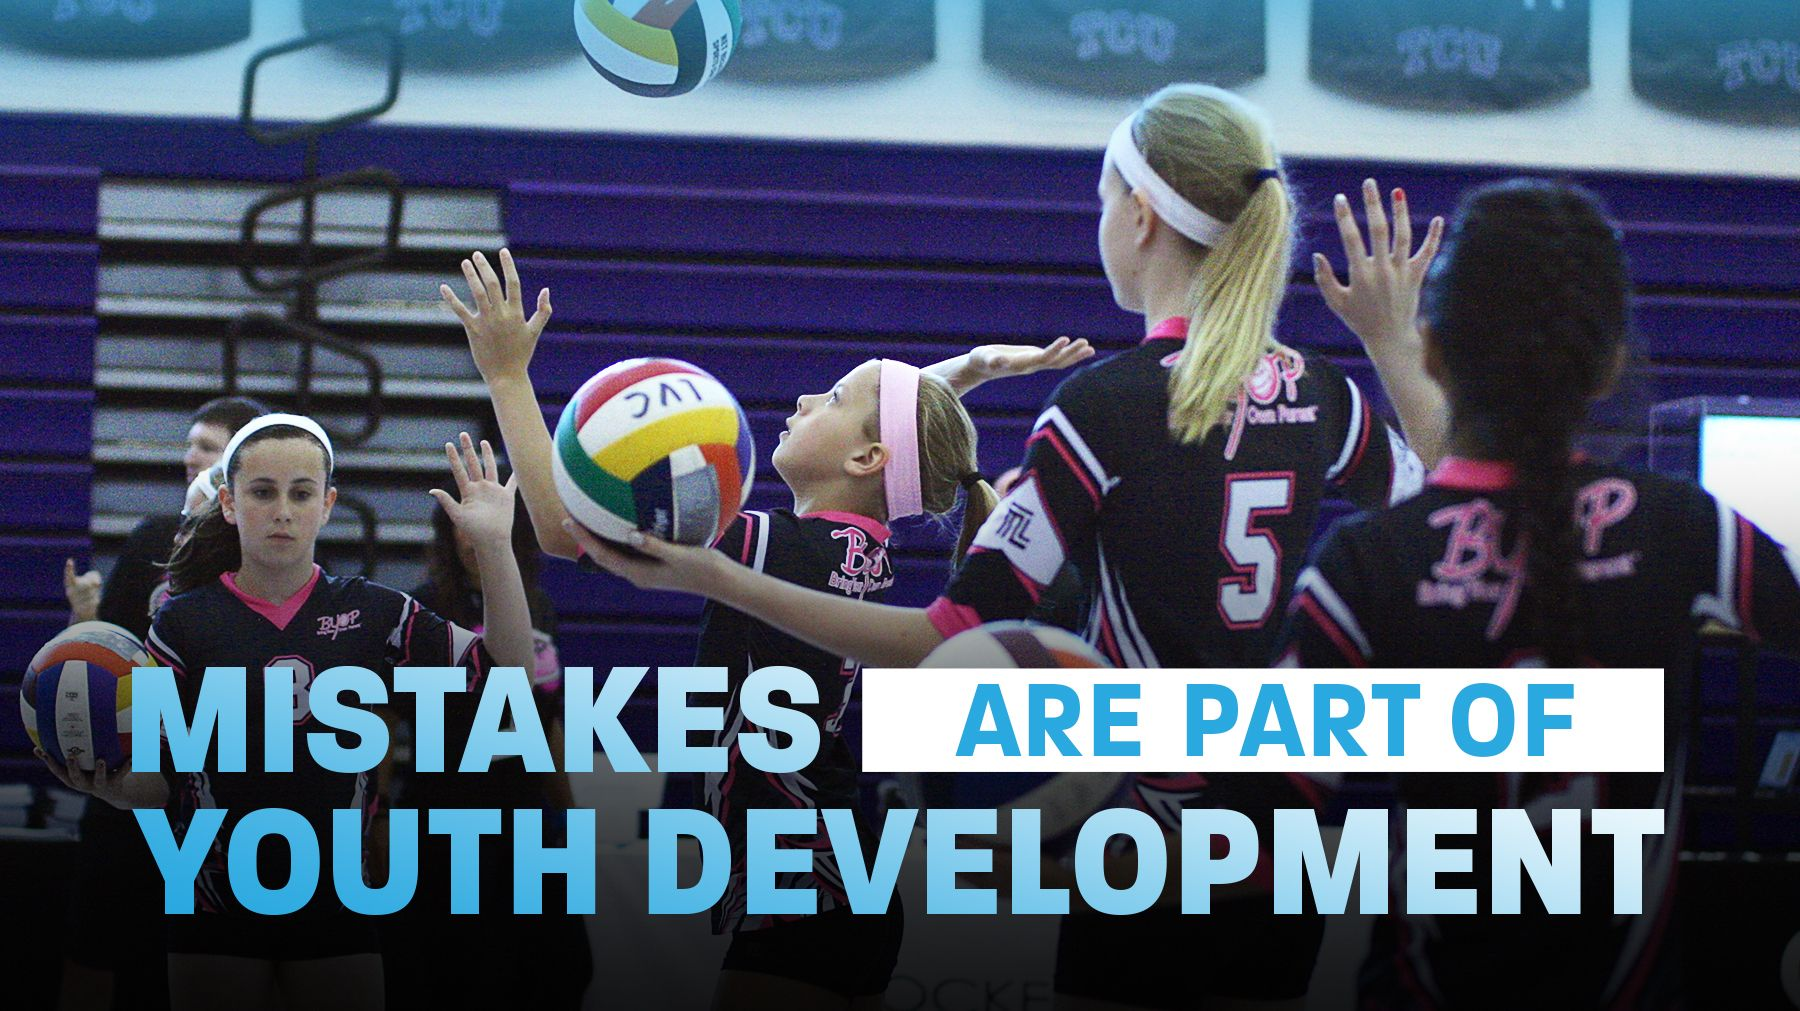 Making Mistakes Is Part Of Youth Development With Images Coaching Volleyball Youth Volleyball Volleyball